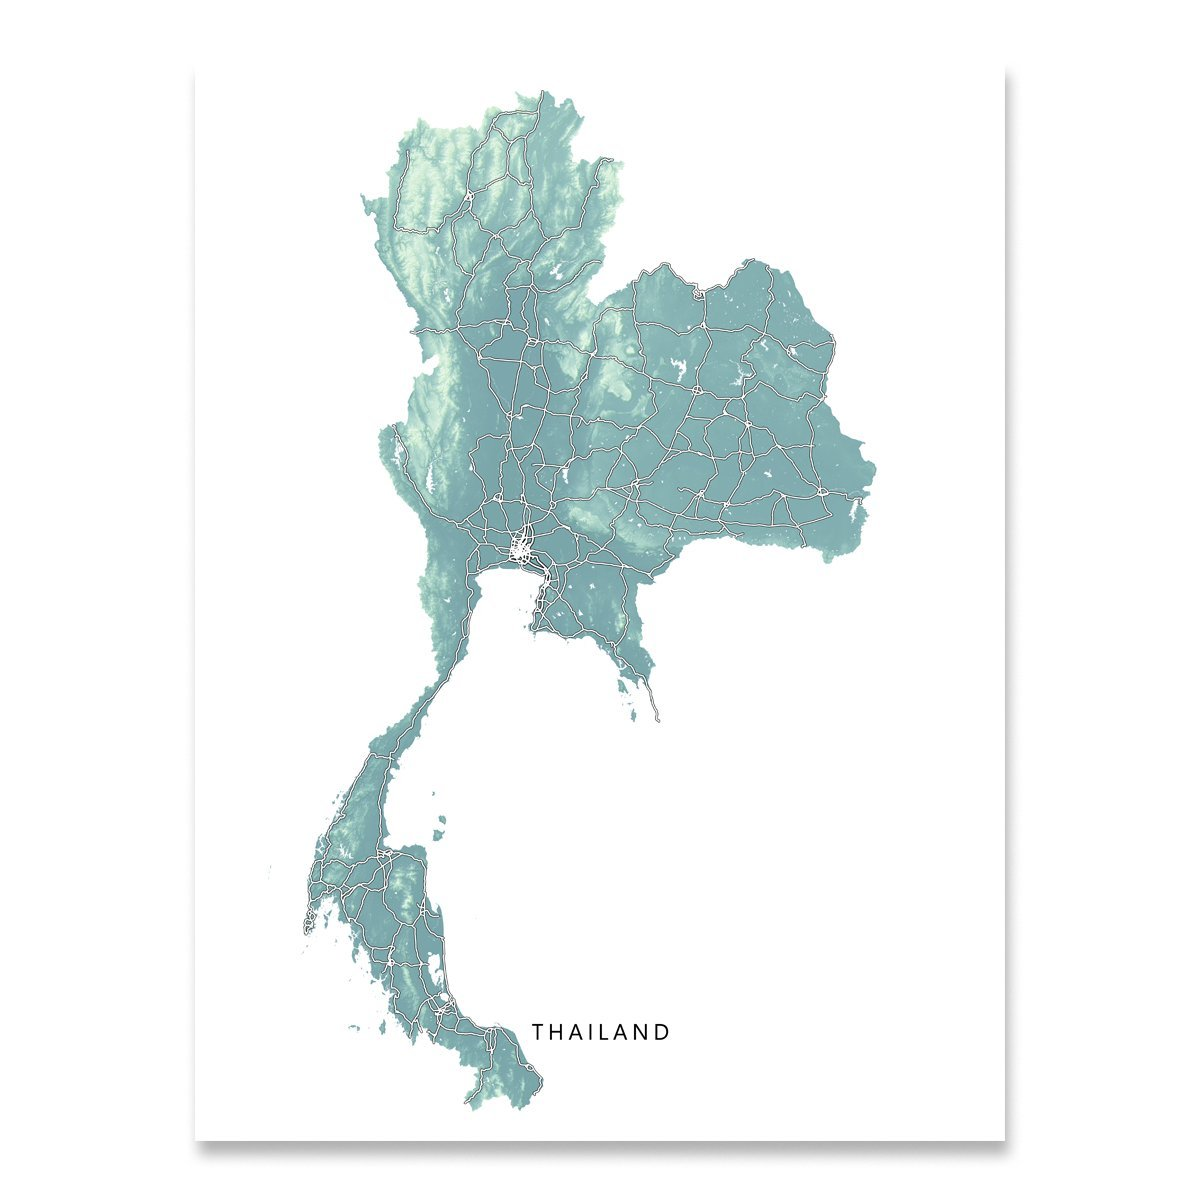 Thailand Map Art Print, Thai, Southeast Asia, Country Travel, Road Artwork Poster